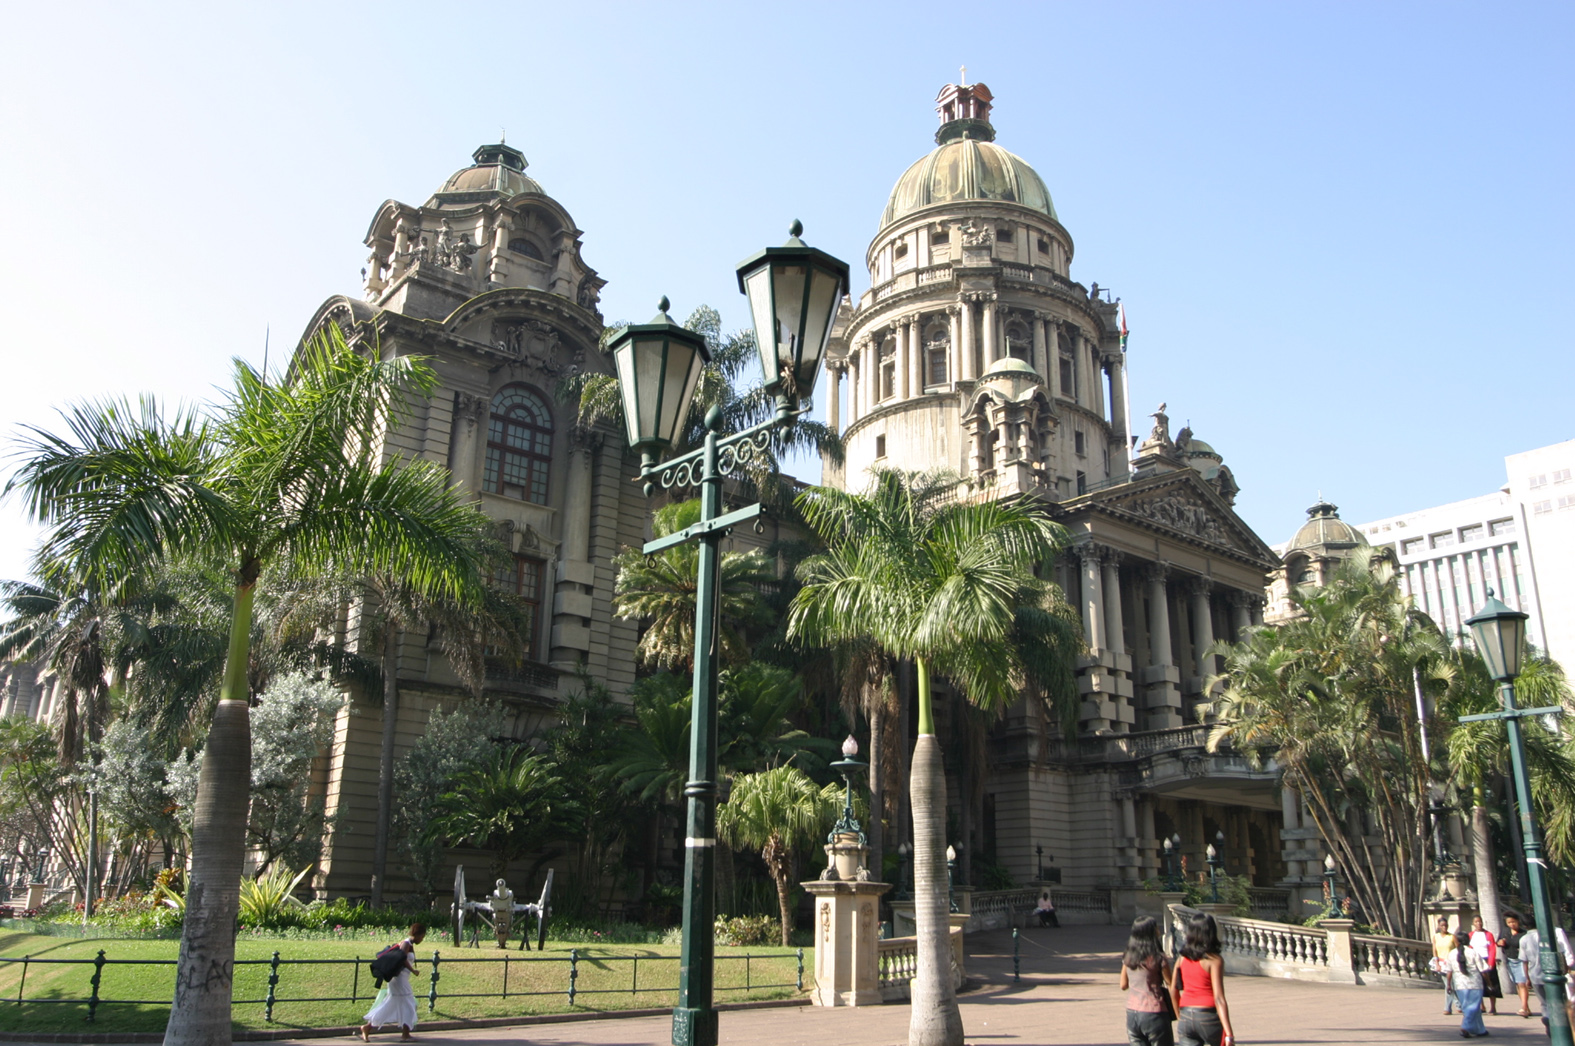 Scenes in and around Durban / Durban City Hall